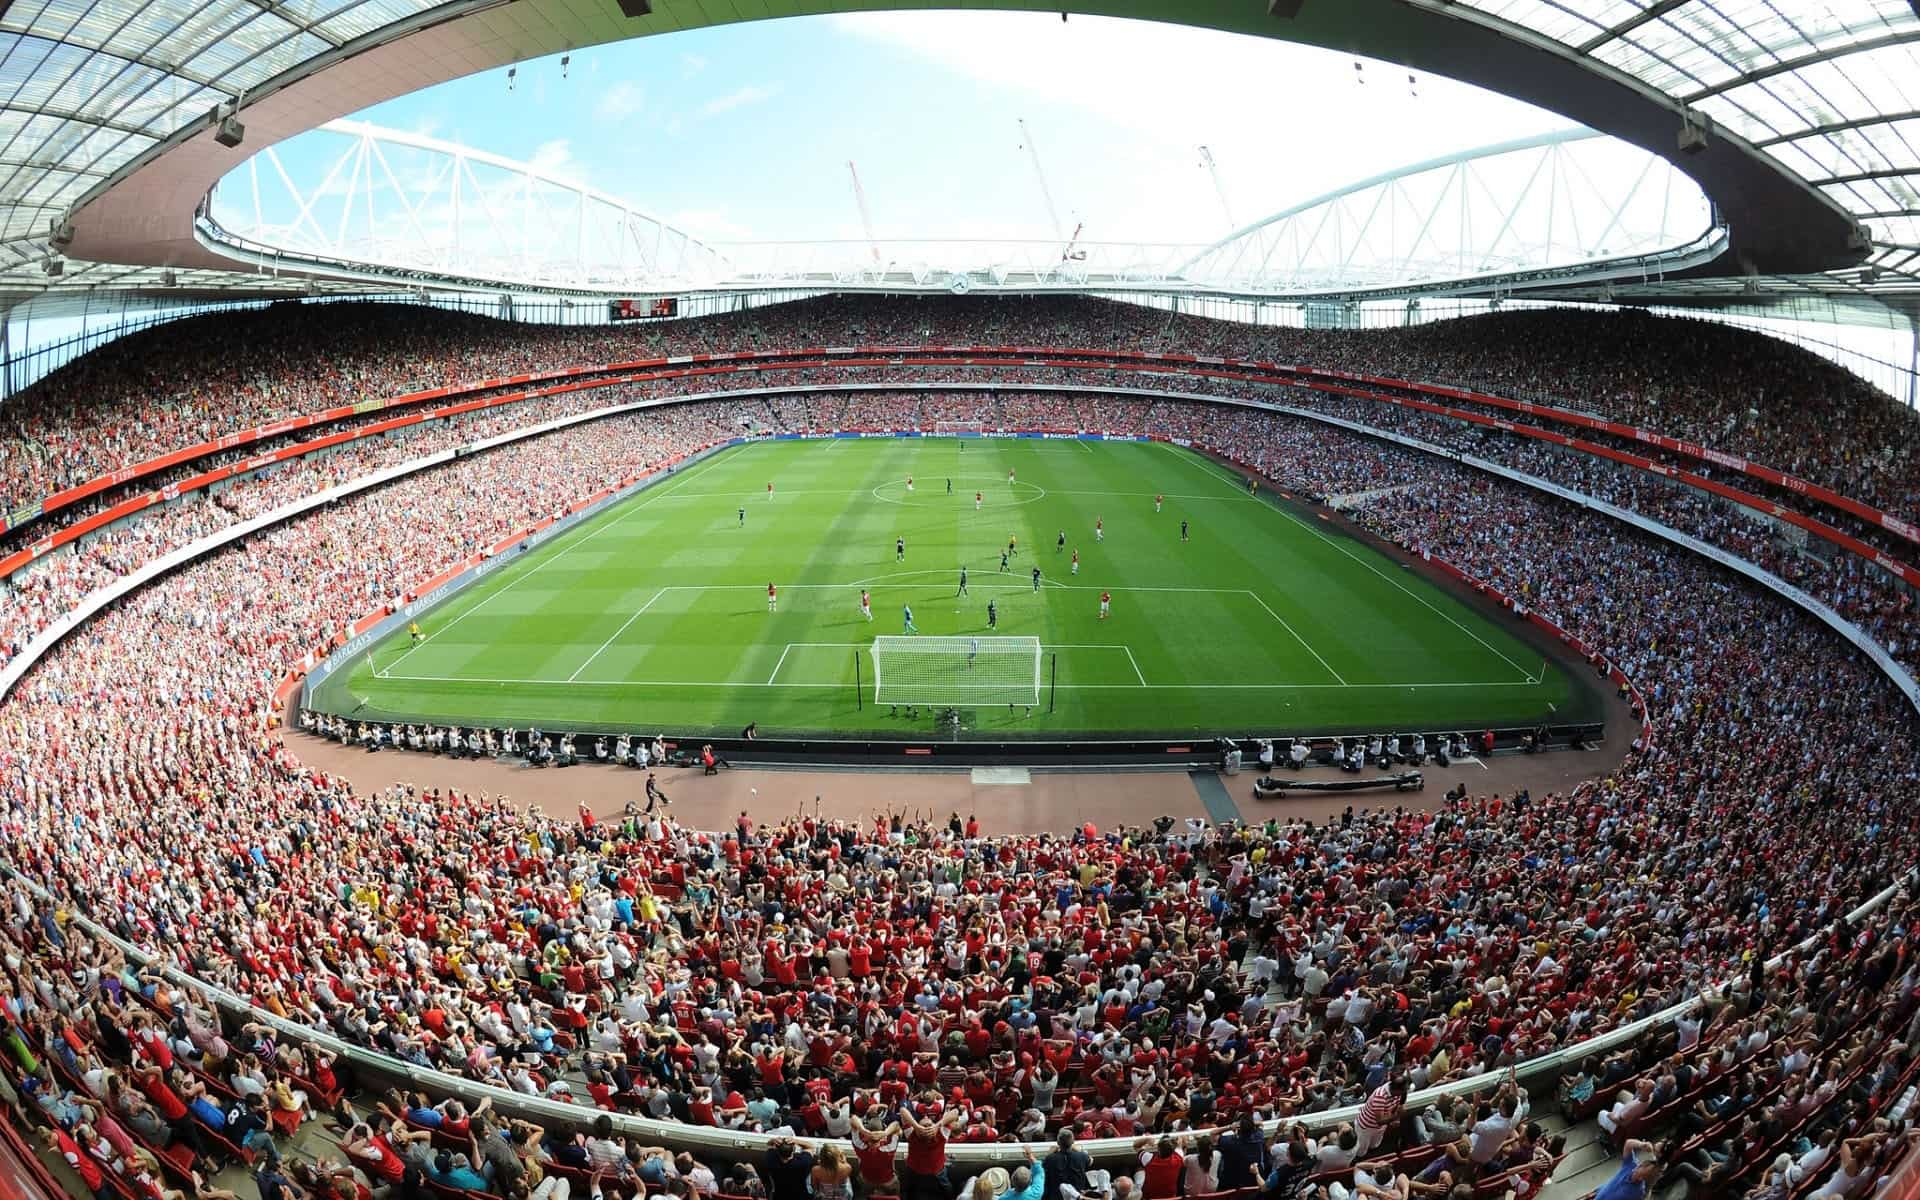 Arsenal FC - Aston Villa, 0 septemberkl. 16:30